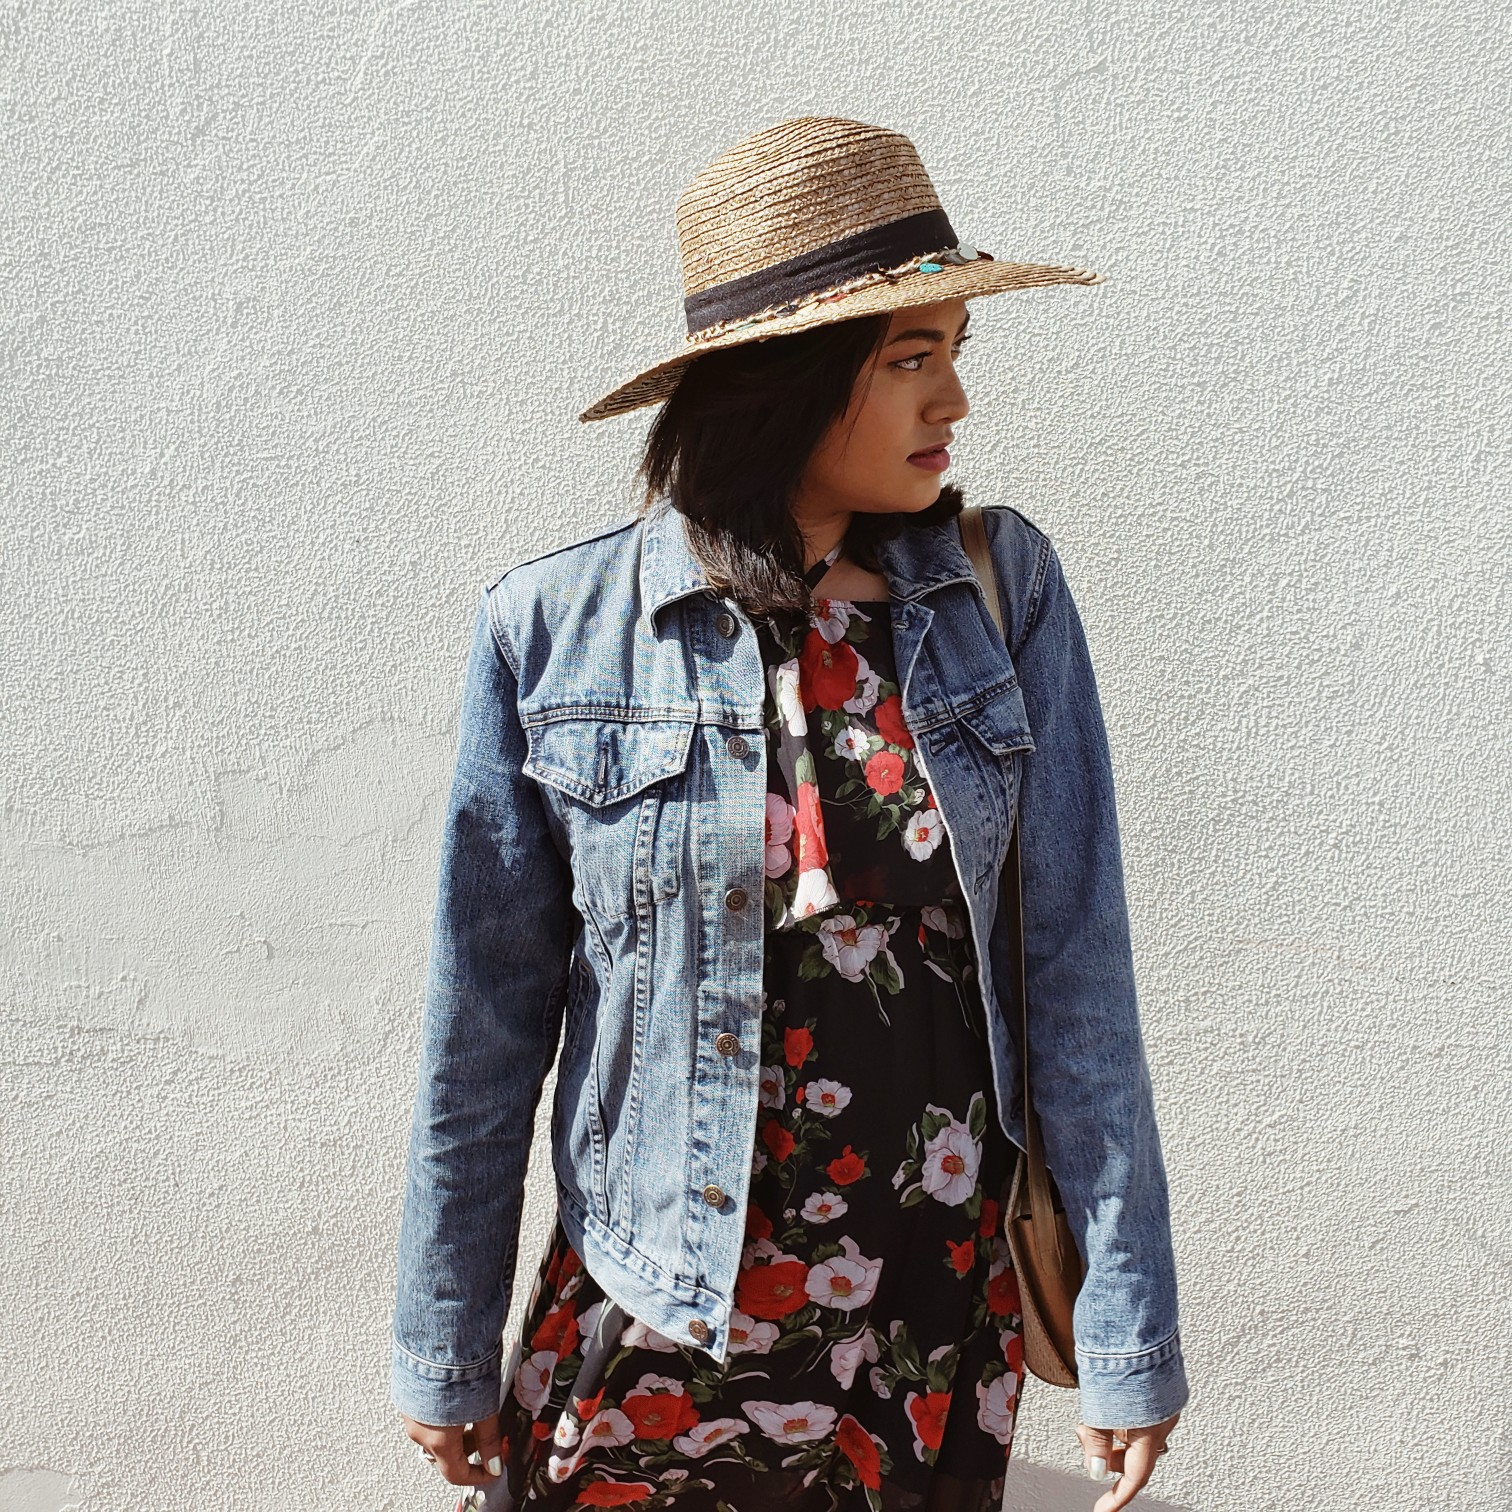 Floral Dress Free People Hat Sunny Street Style